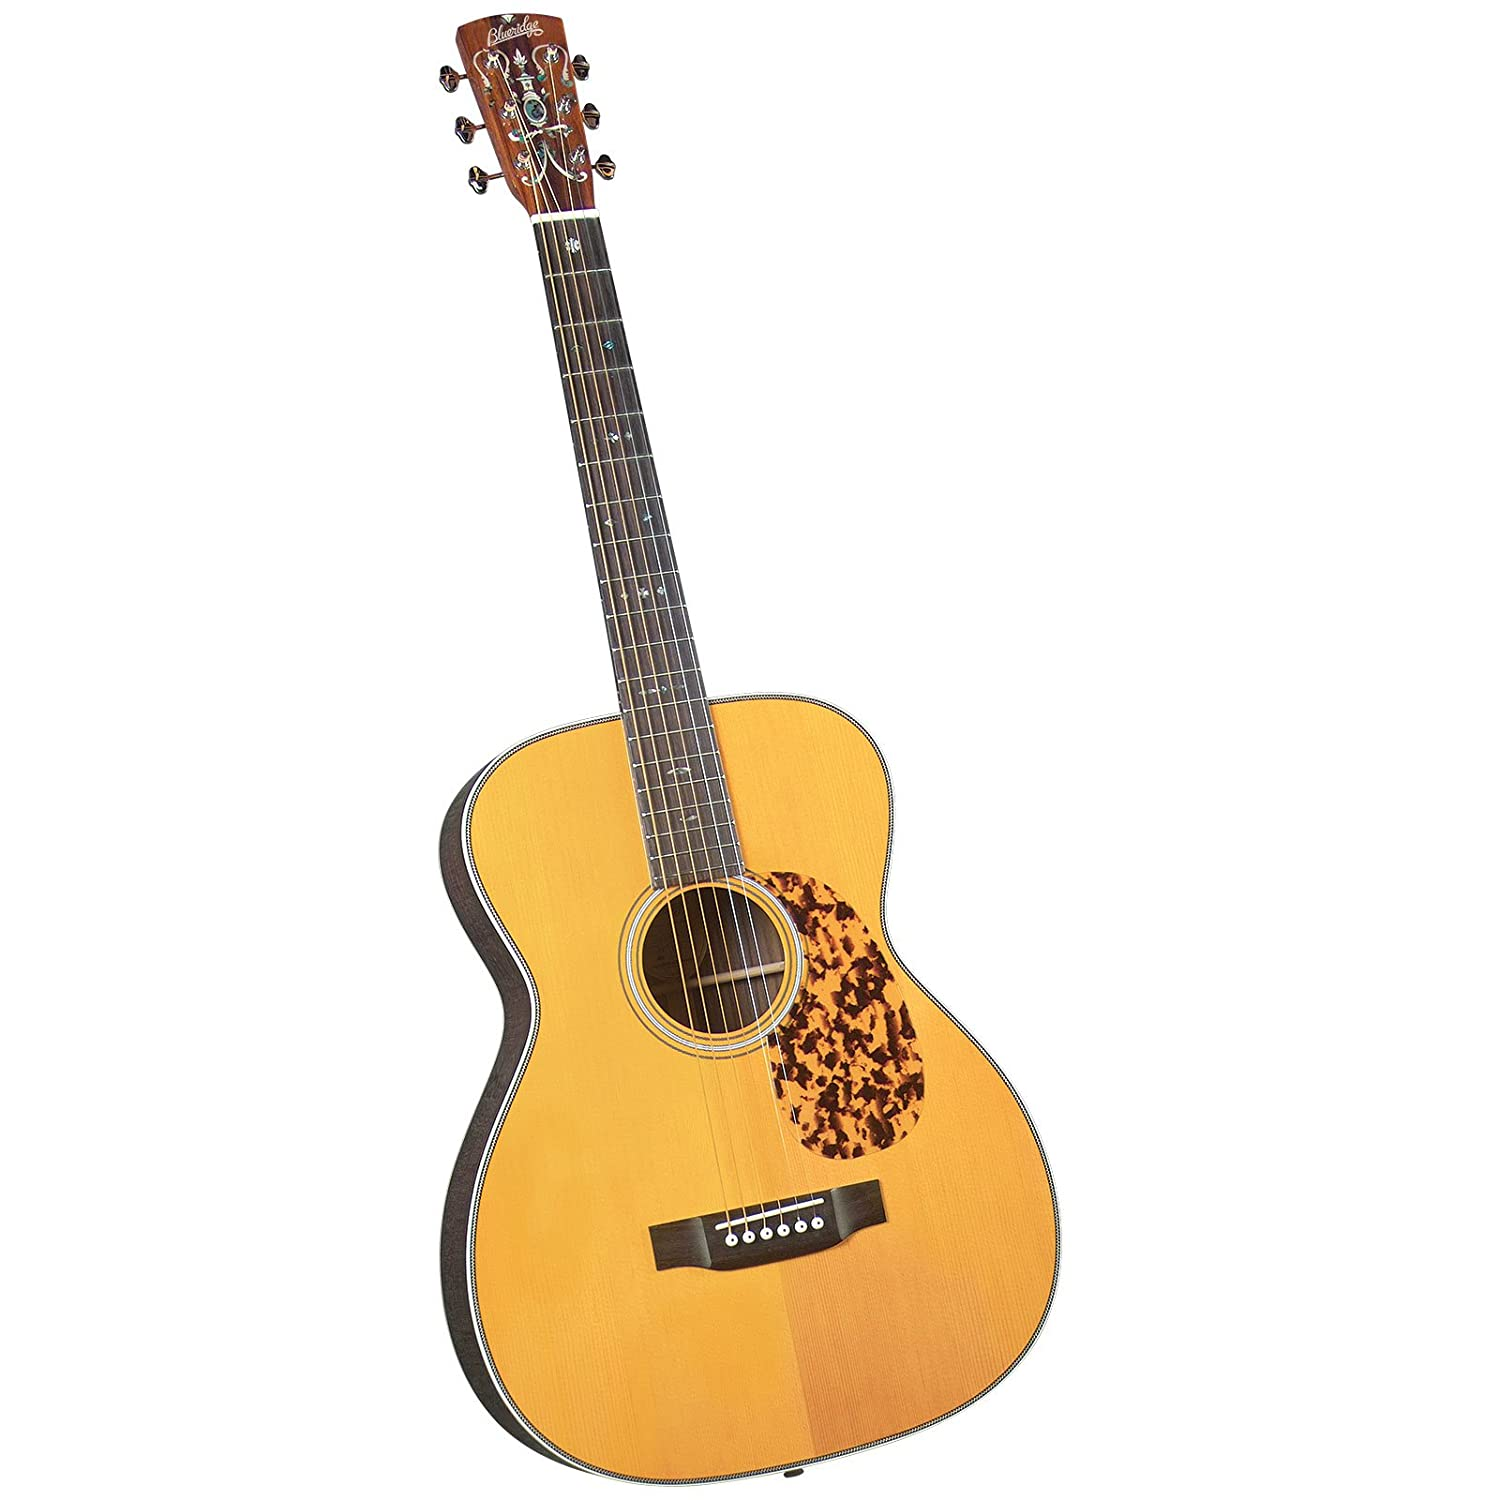 Top 10 Best Acoustic Guitar Under $500 to $1000 (2020 Reviews) 5